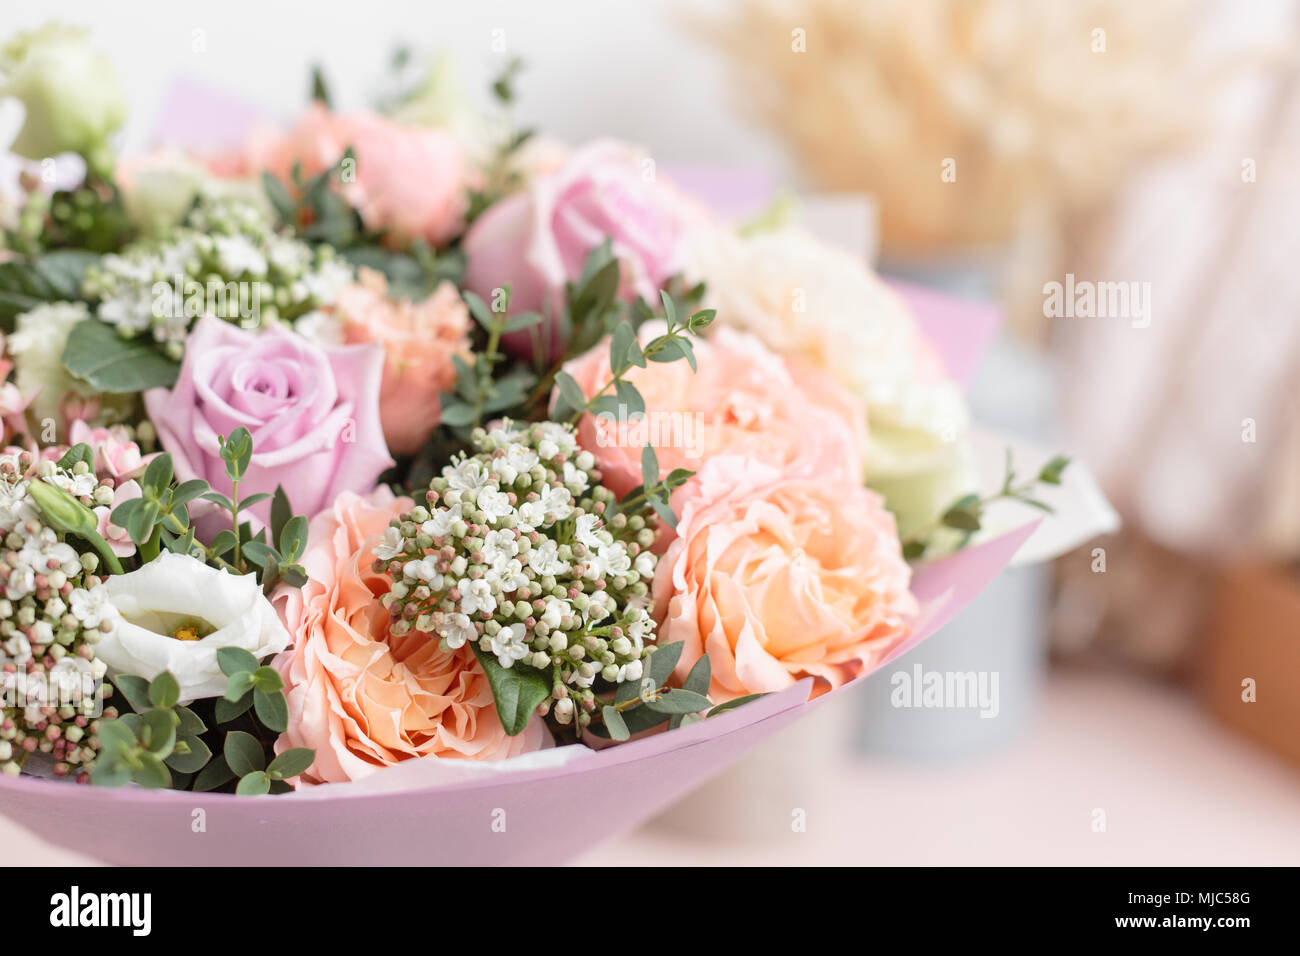 Pastel Orange And Lilac Bouquet Of Beautiful Flowers On Wooden Table